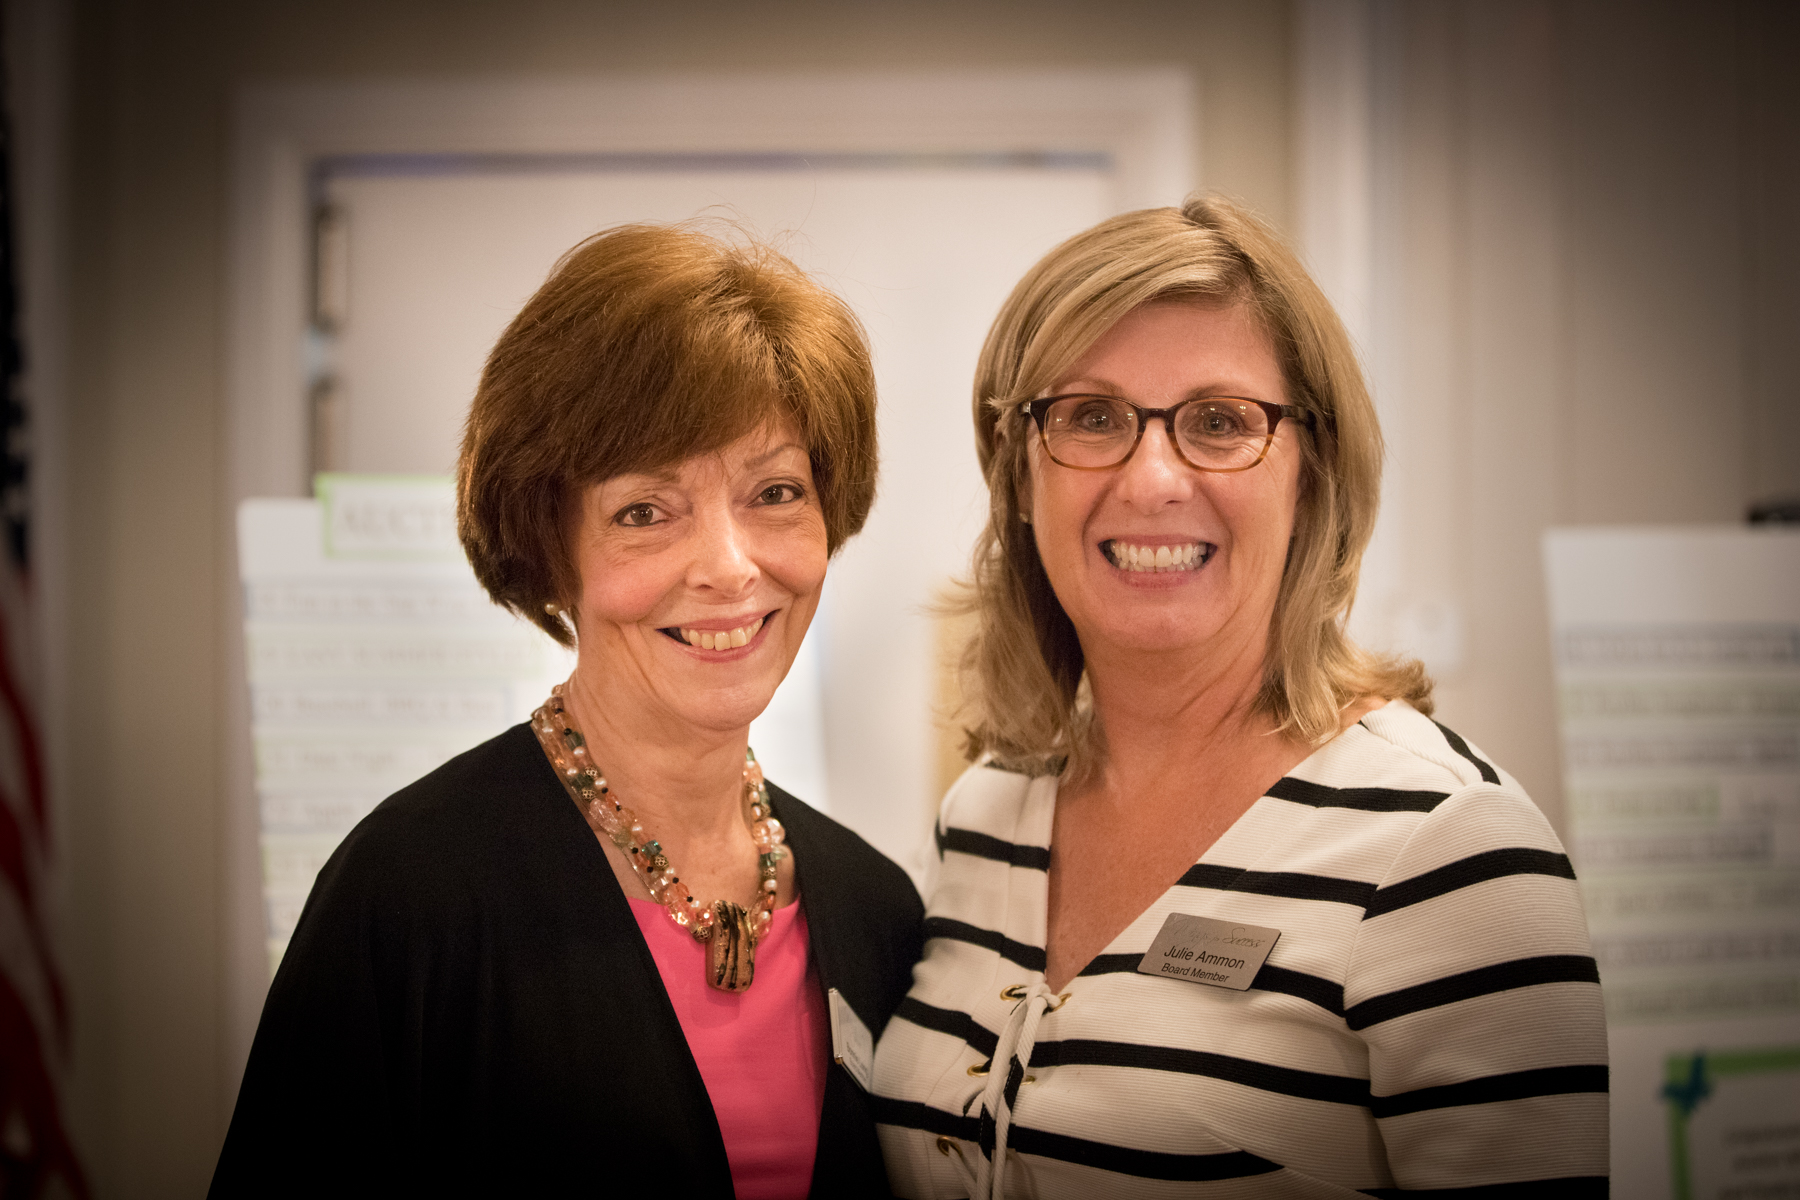 Bonnie Long, Co-Chair of the event (L) with Julie Ammon, Board President.